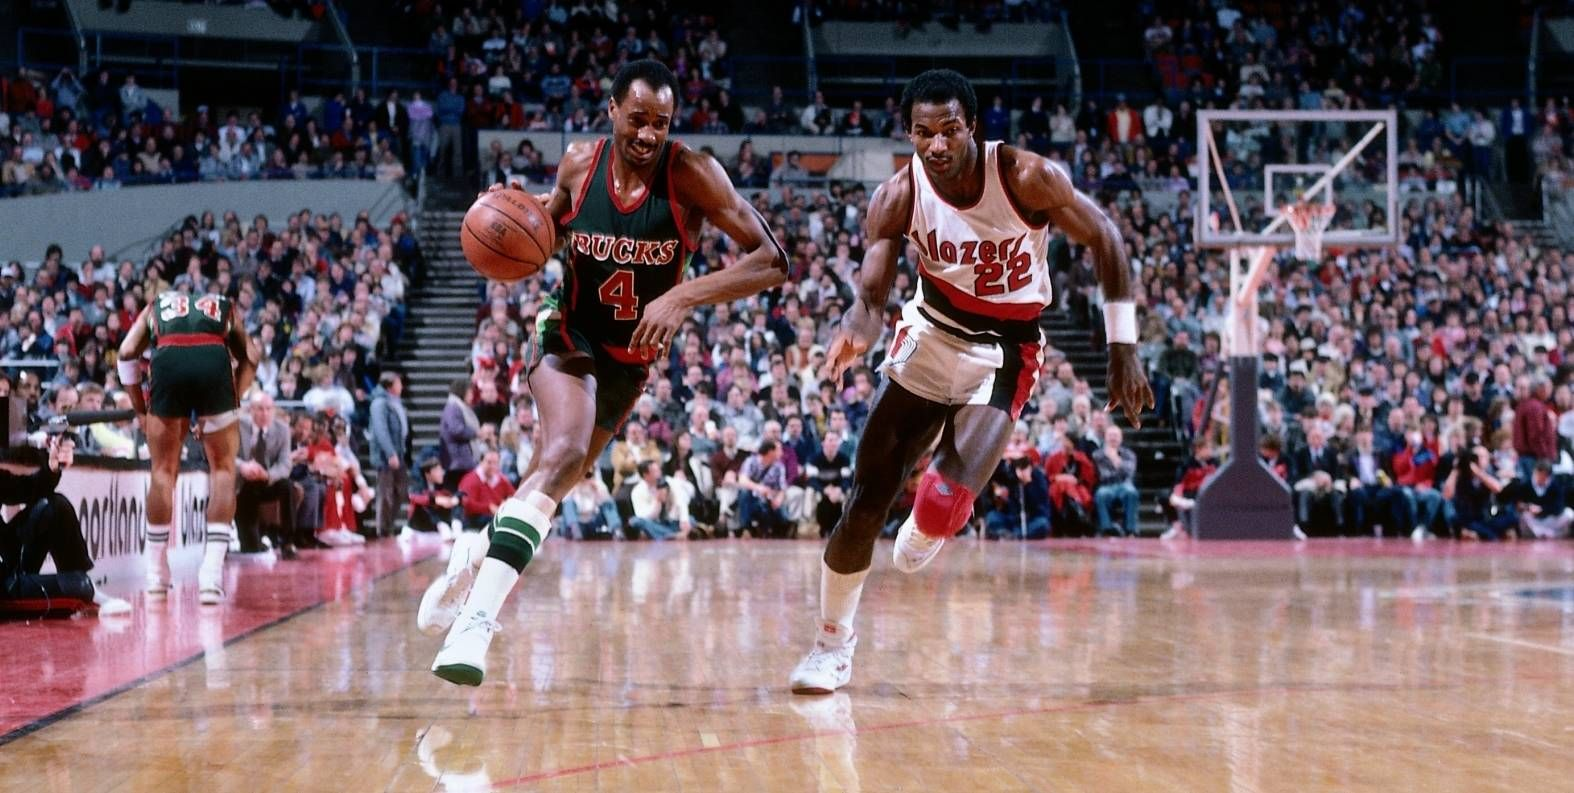 Sidney Moncrief Basketball legends Pinterest